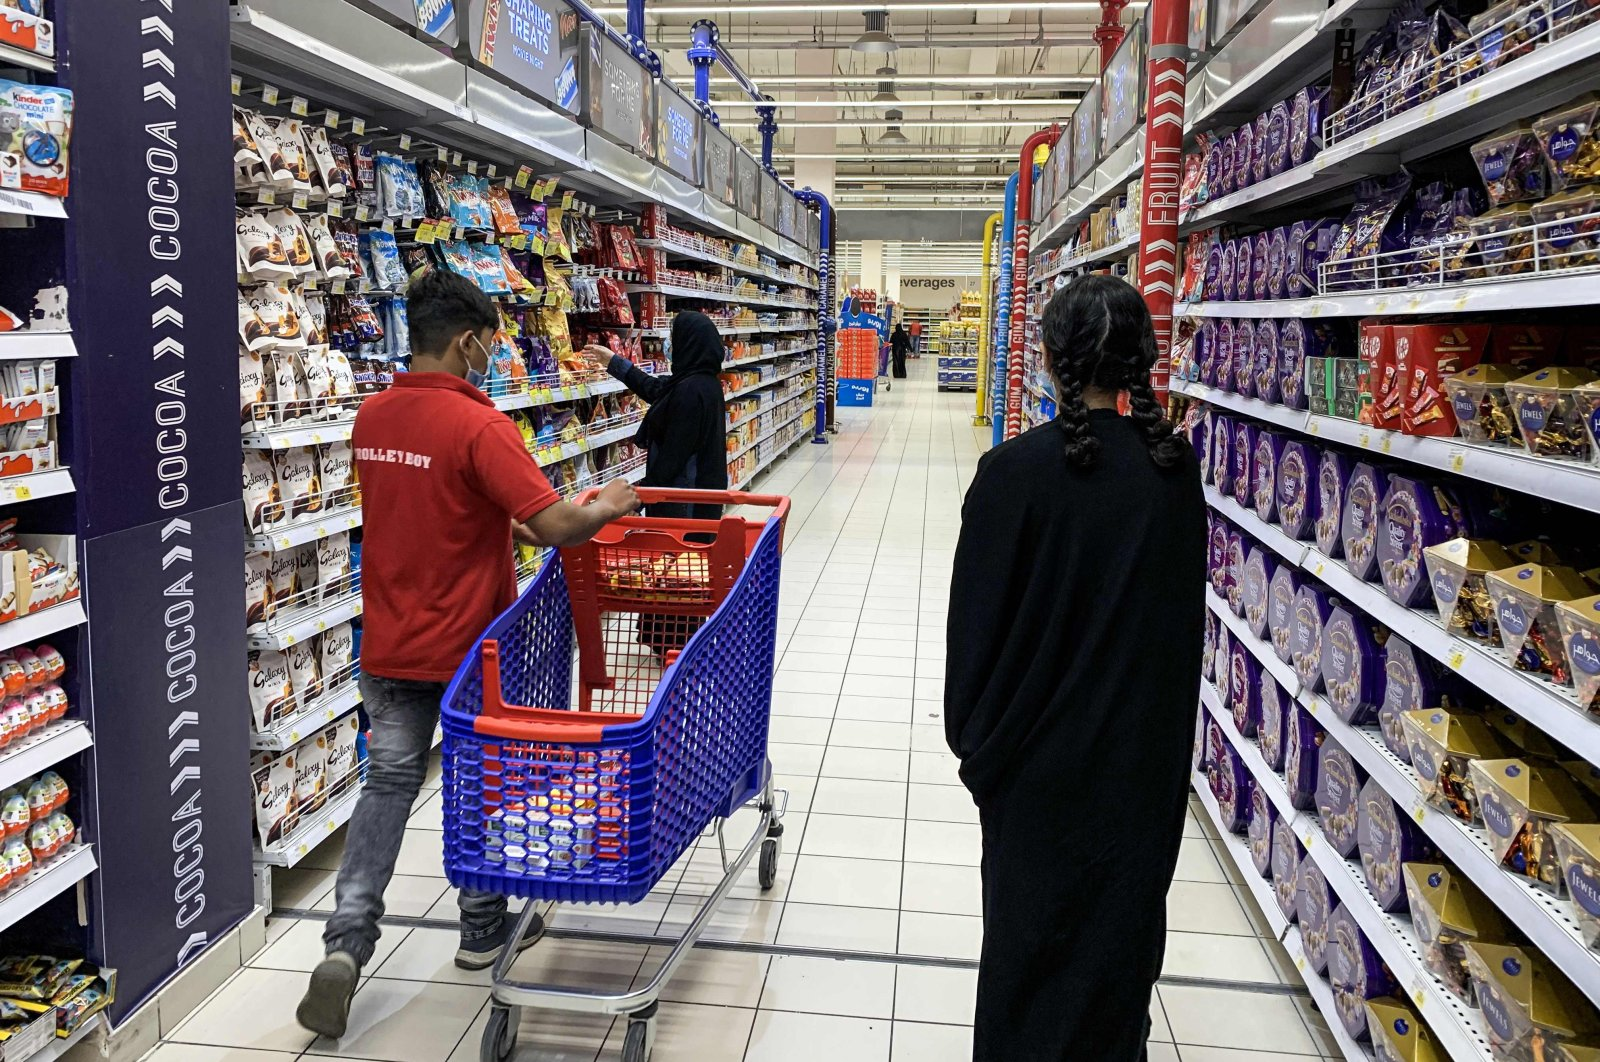 A woman shops for snacks at a supermarket in the capital Riyadh, Saudi Arabia, Oct. 18, 2020. (AFP Photo)